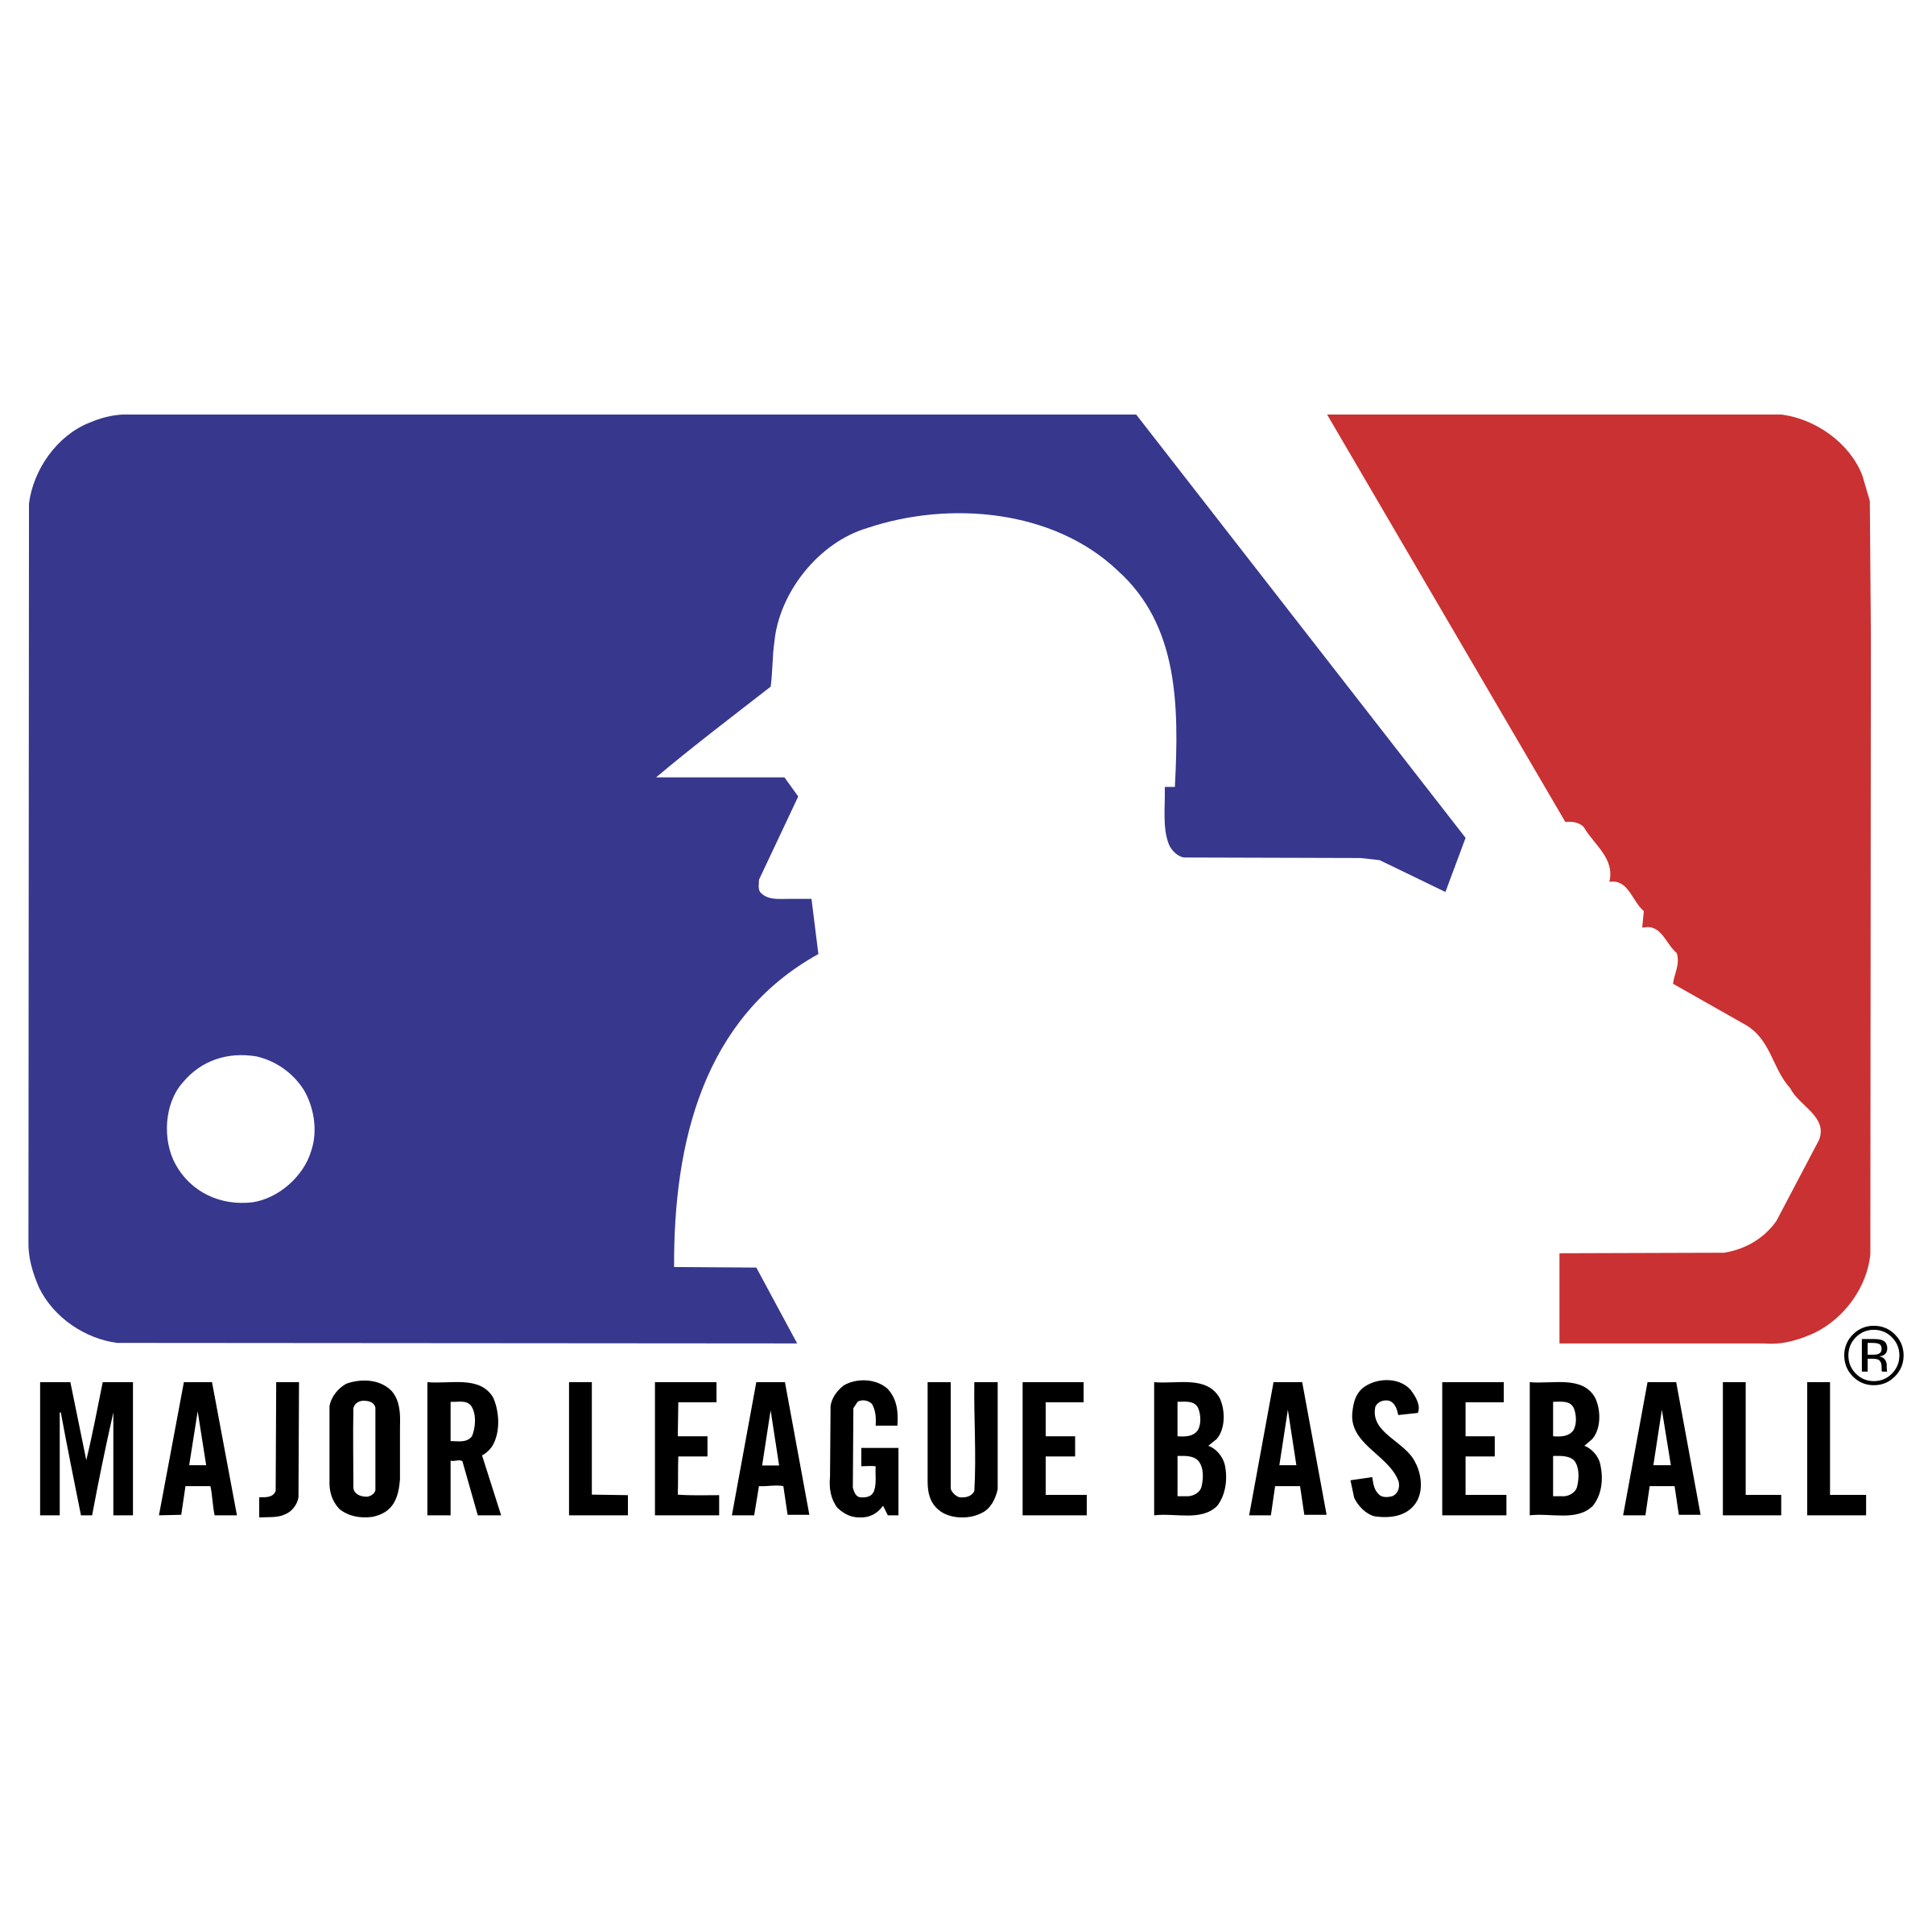 Mlg Logo With Name Png Image Mlb Logos Logos Major League Baseball